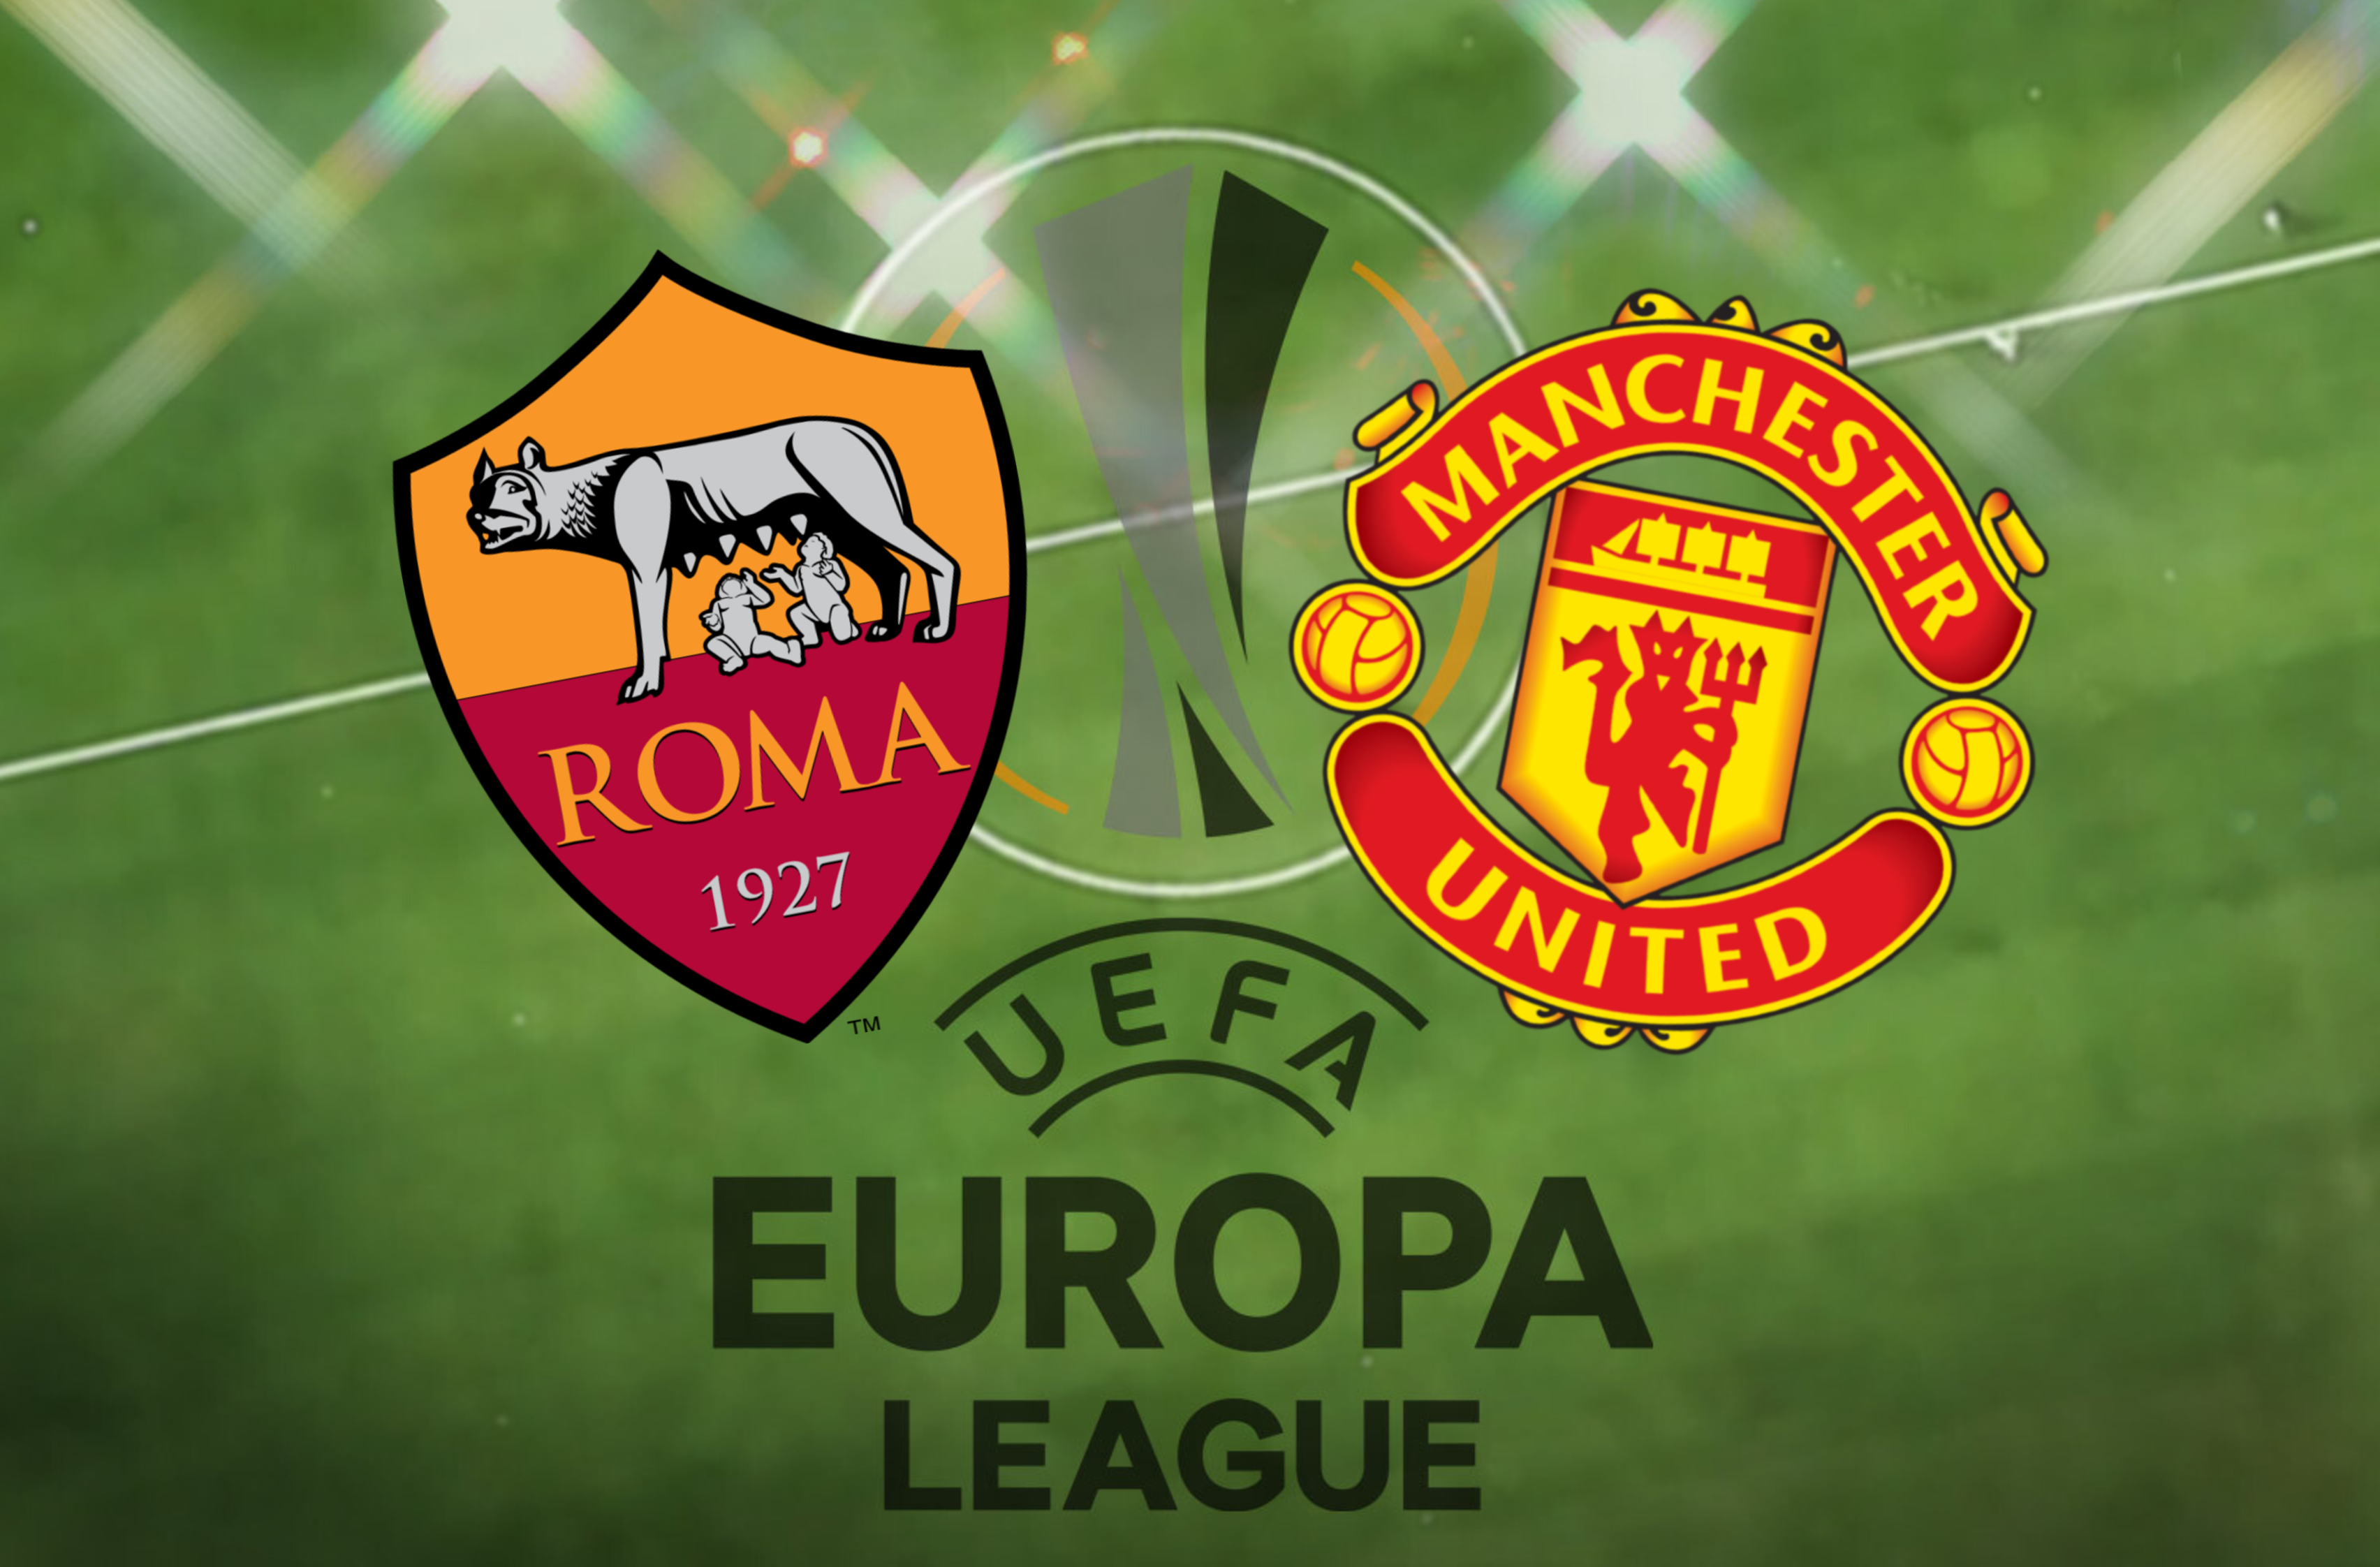 Manchester United v Roma: Europa League semifinal prediction, TV channel, team news, live stream, head to head